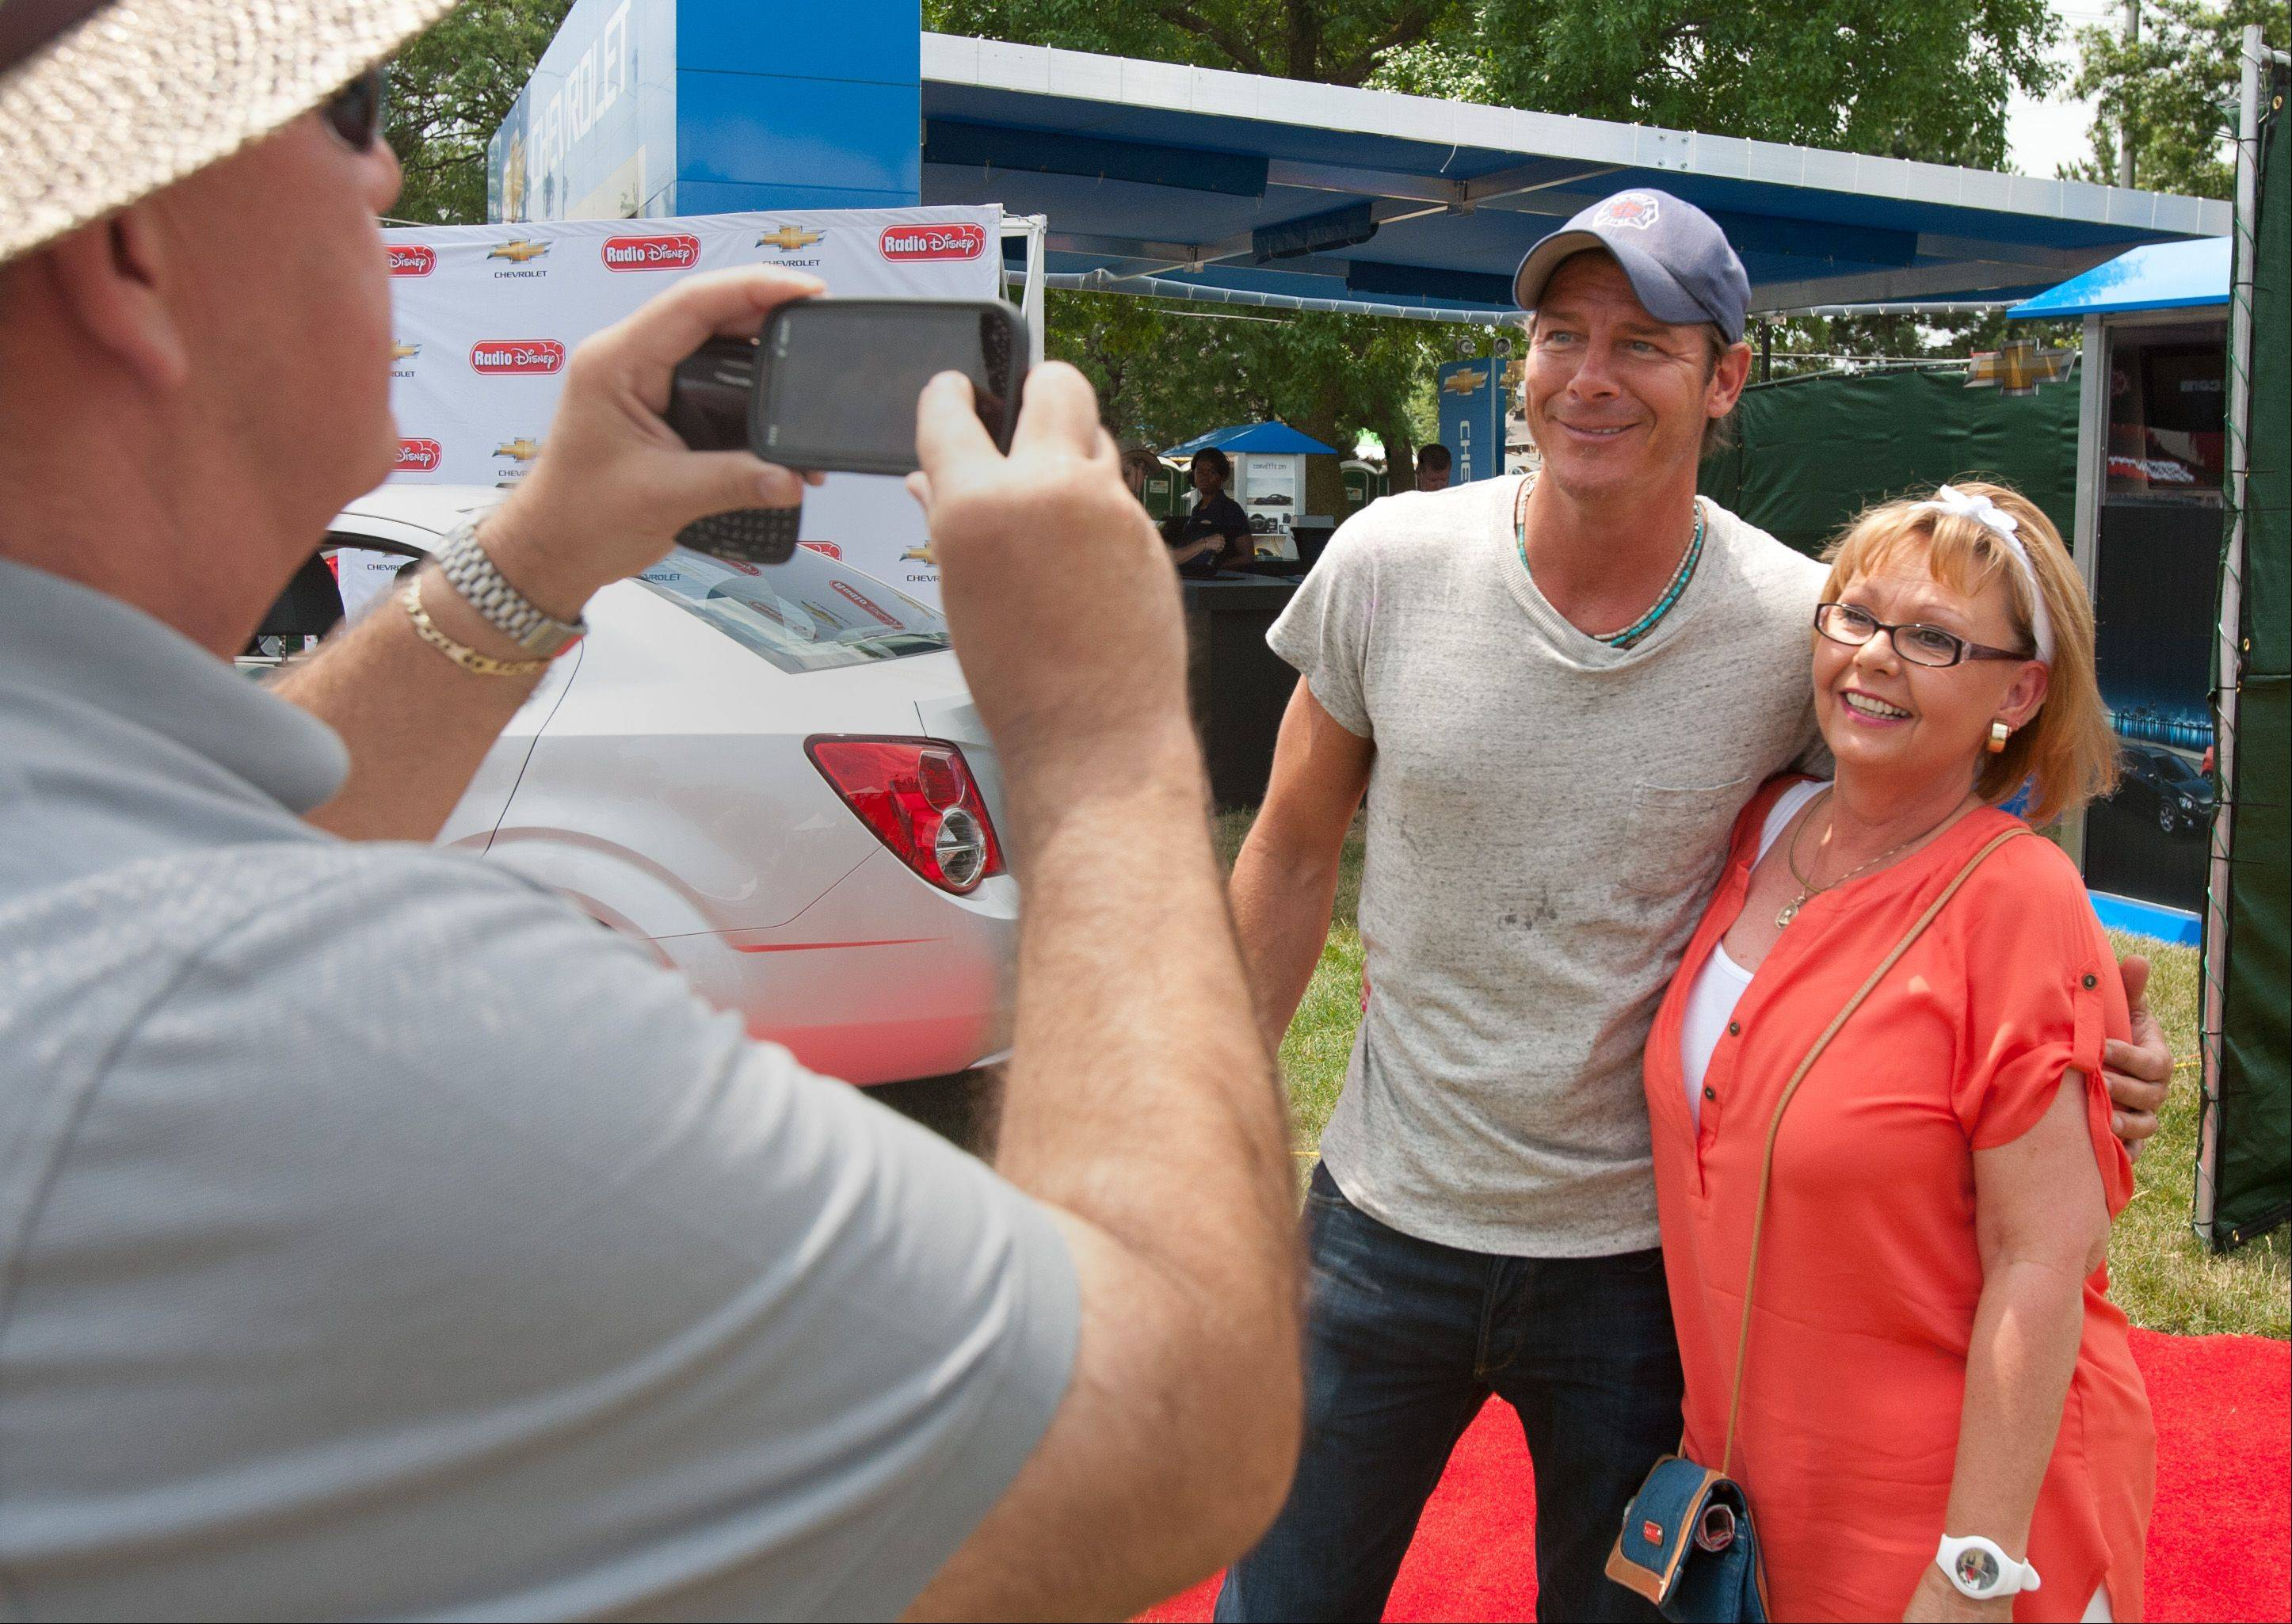 """Extreme Makeover: Home Edition"" star Ty Pennington poses for a photo with Debbie Burke of Downers Grove as he moves around Naperville's Ribfest as part of the Sears Grilling is Happiness team."